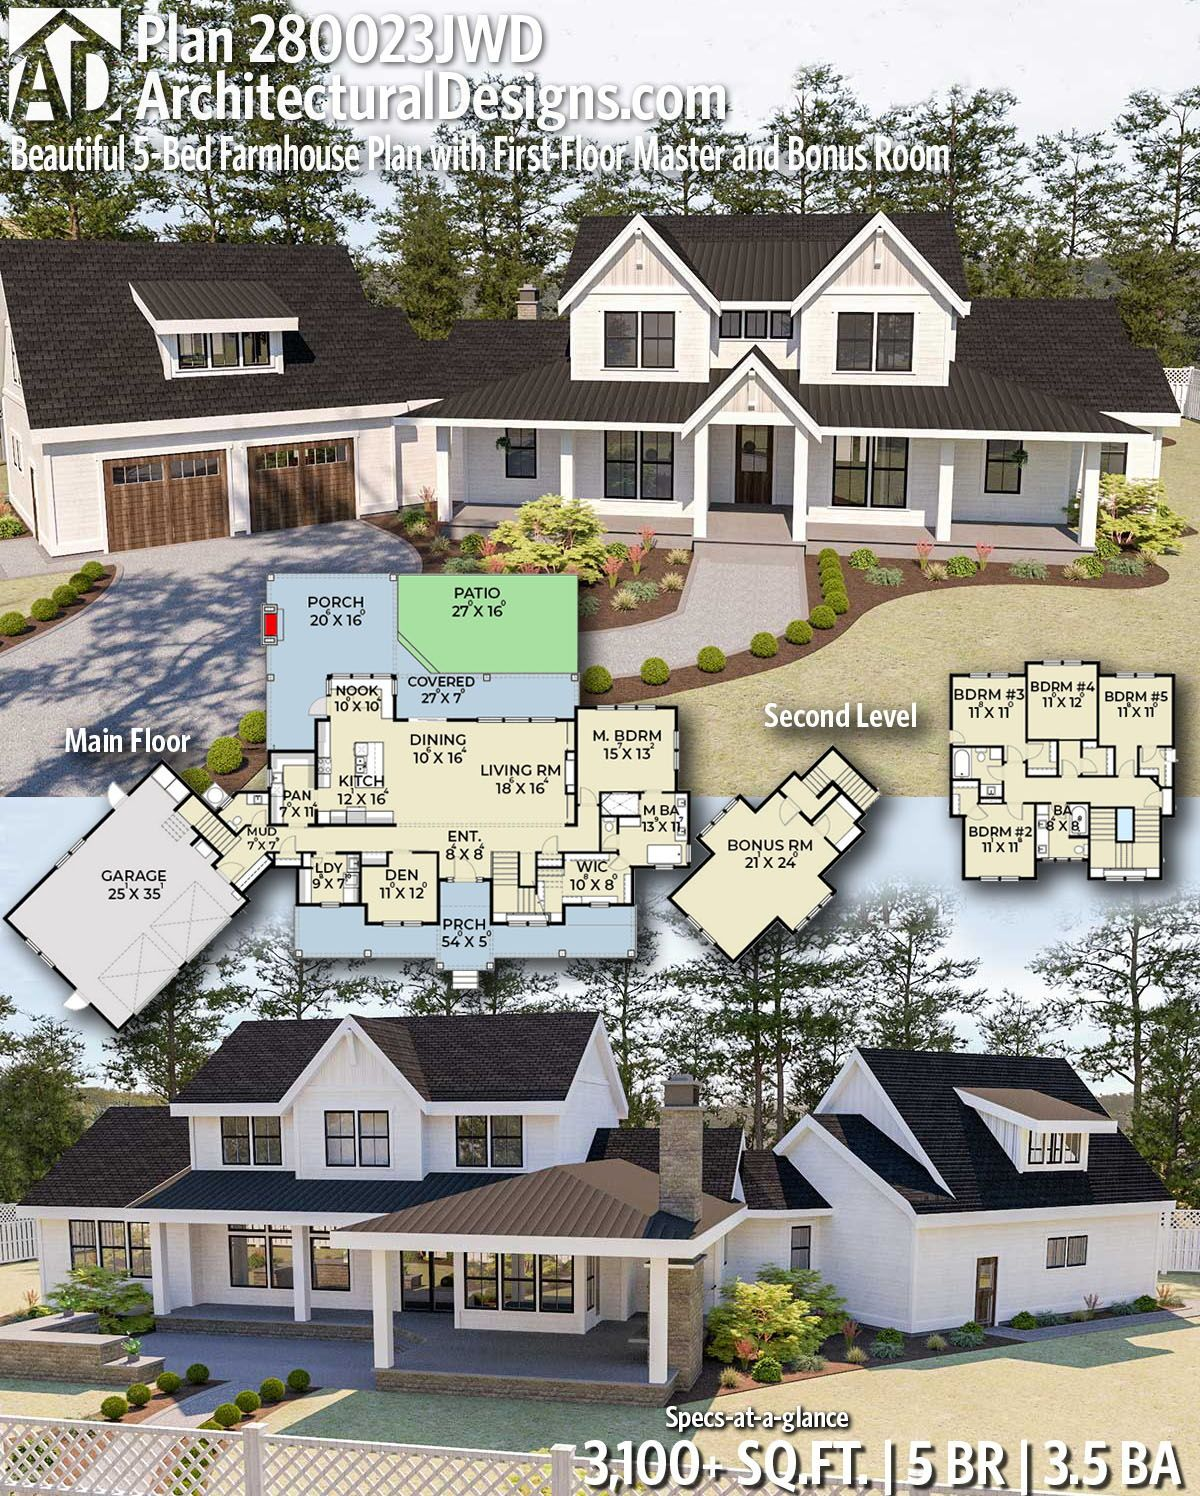 Plan 280023JWD: Beautiful 5-Bed Modern Farmhouse Plan with ... on